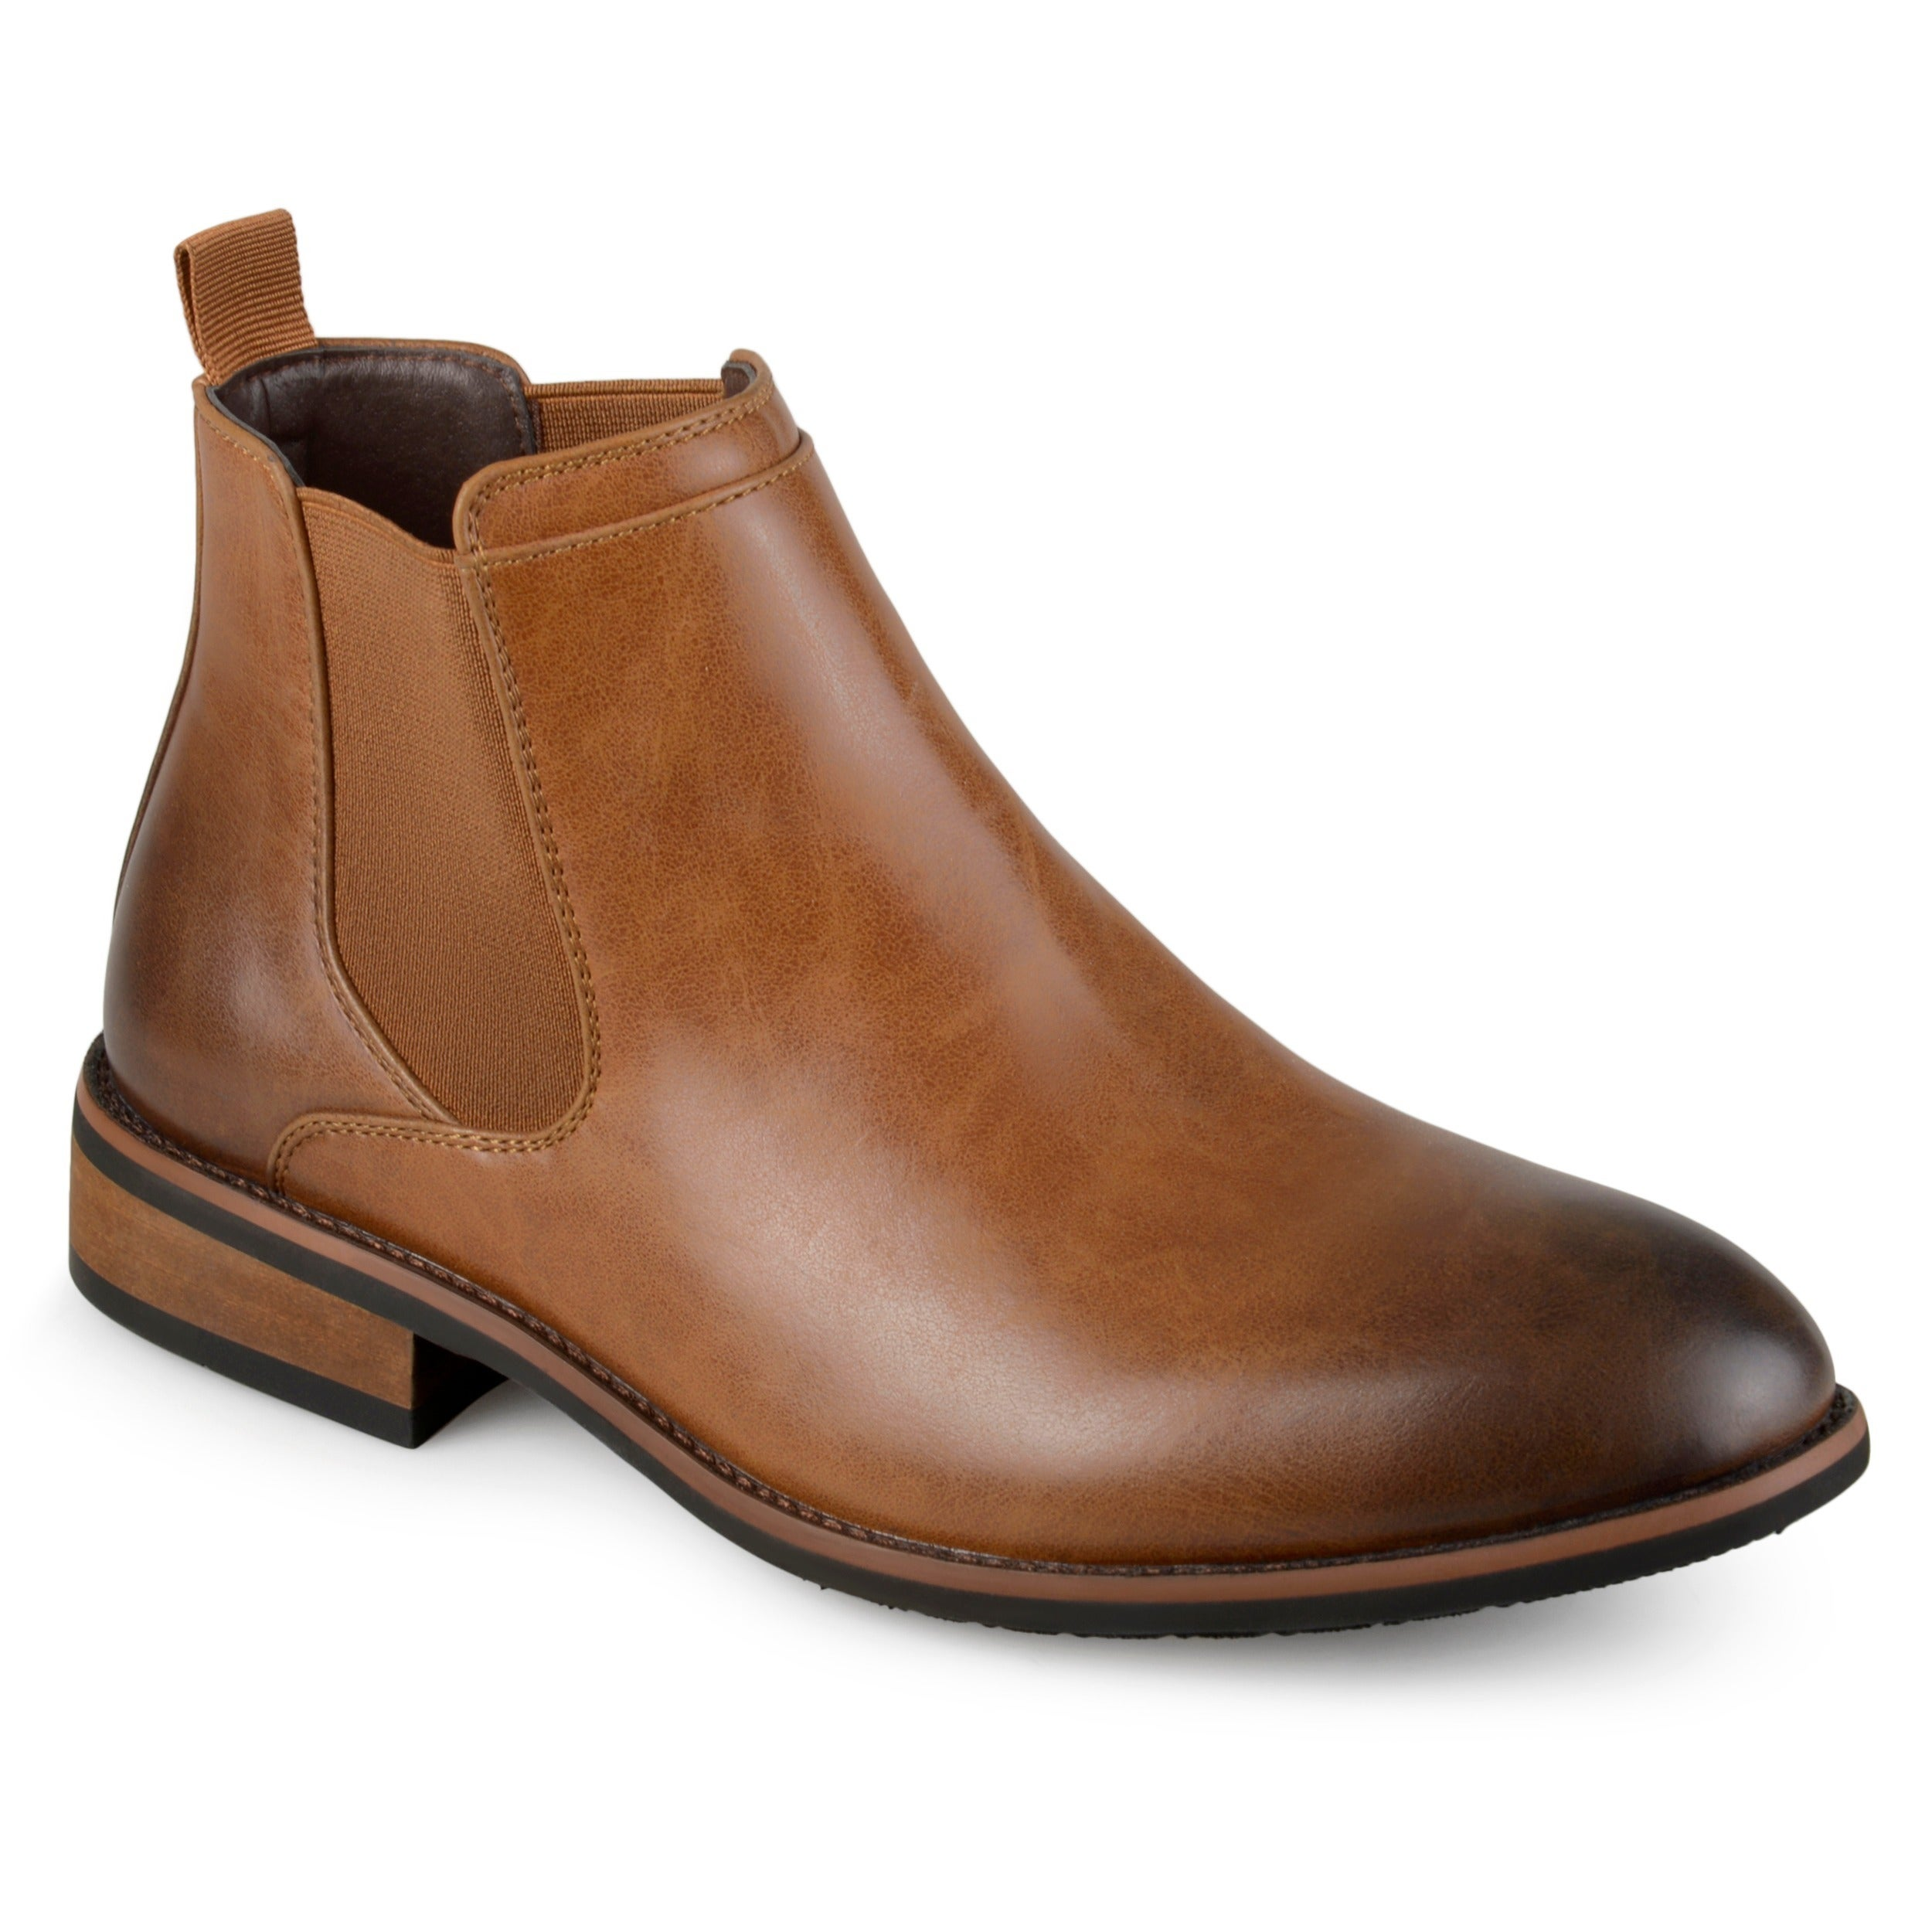 Faux Leather Brown Dress Shoes